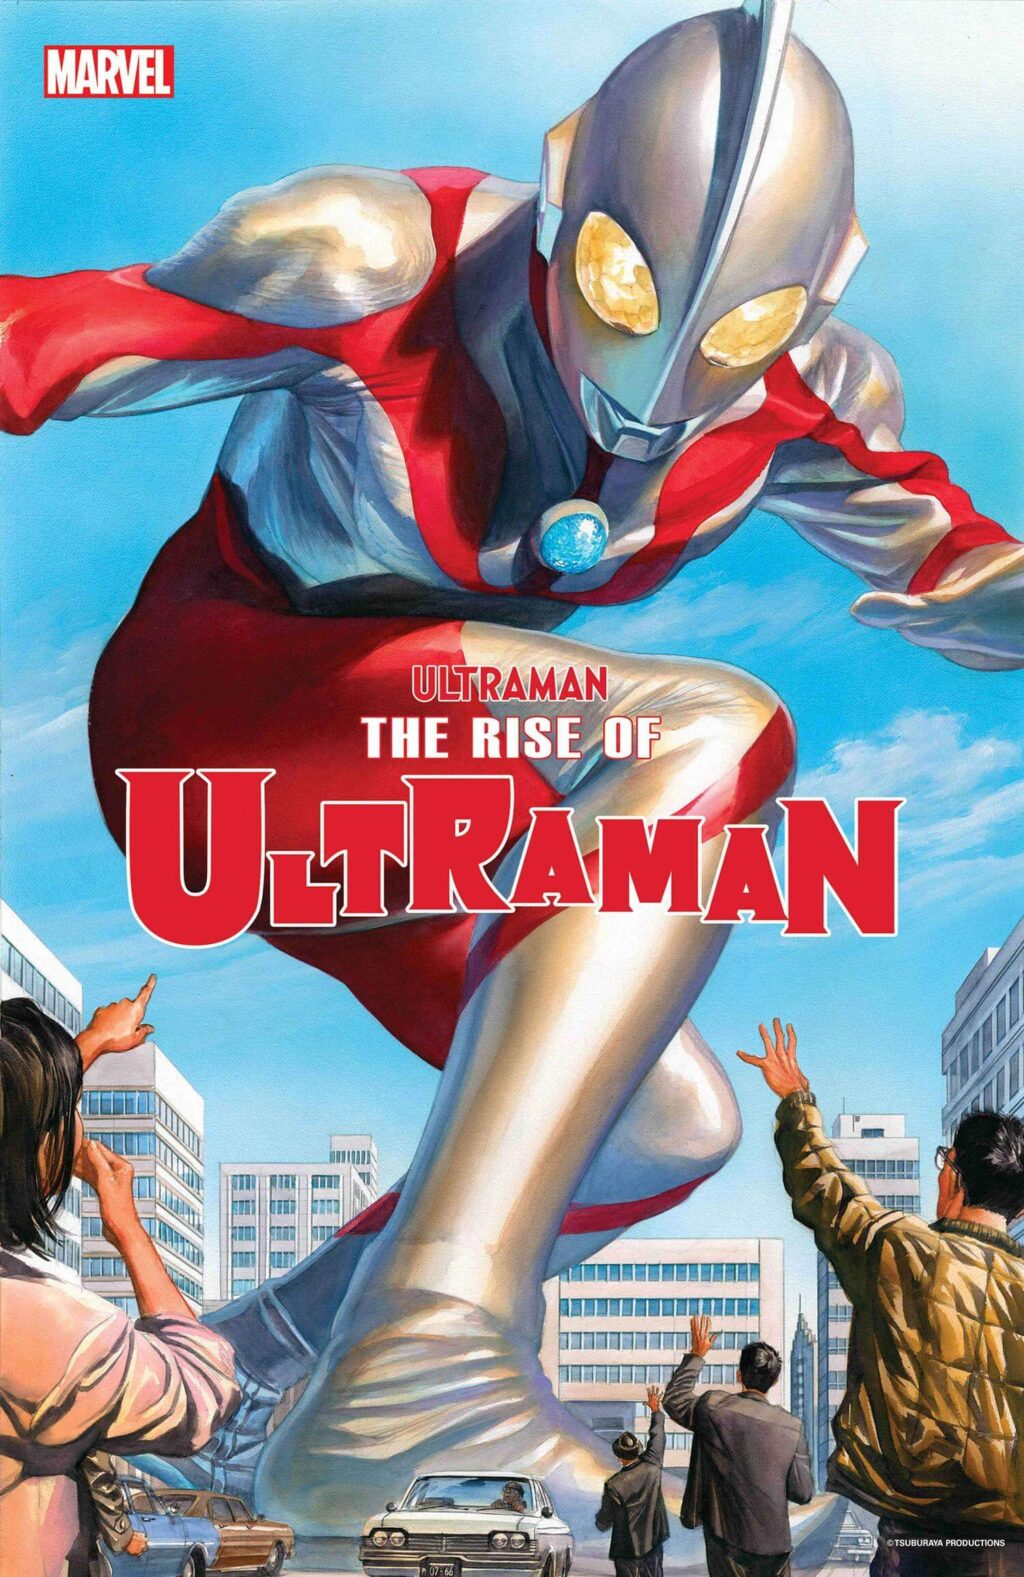 The Rise of Ultraman Marvel2 1 1024x1577 - First Issue Of Marvel's THE RISE OF ULTRAMAN Arrives In September